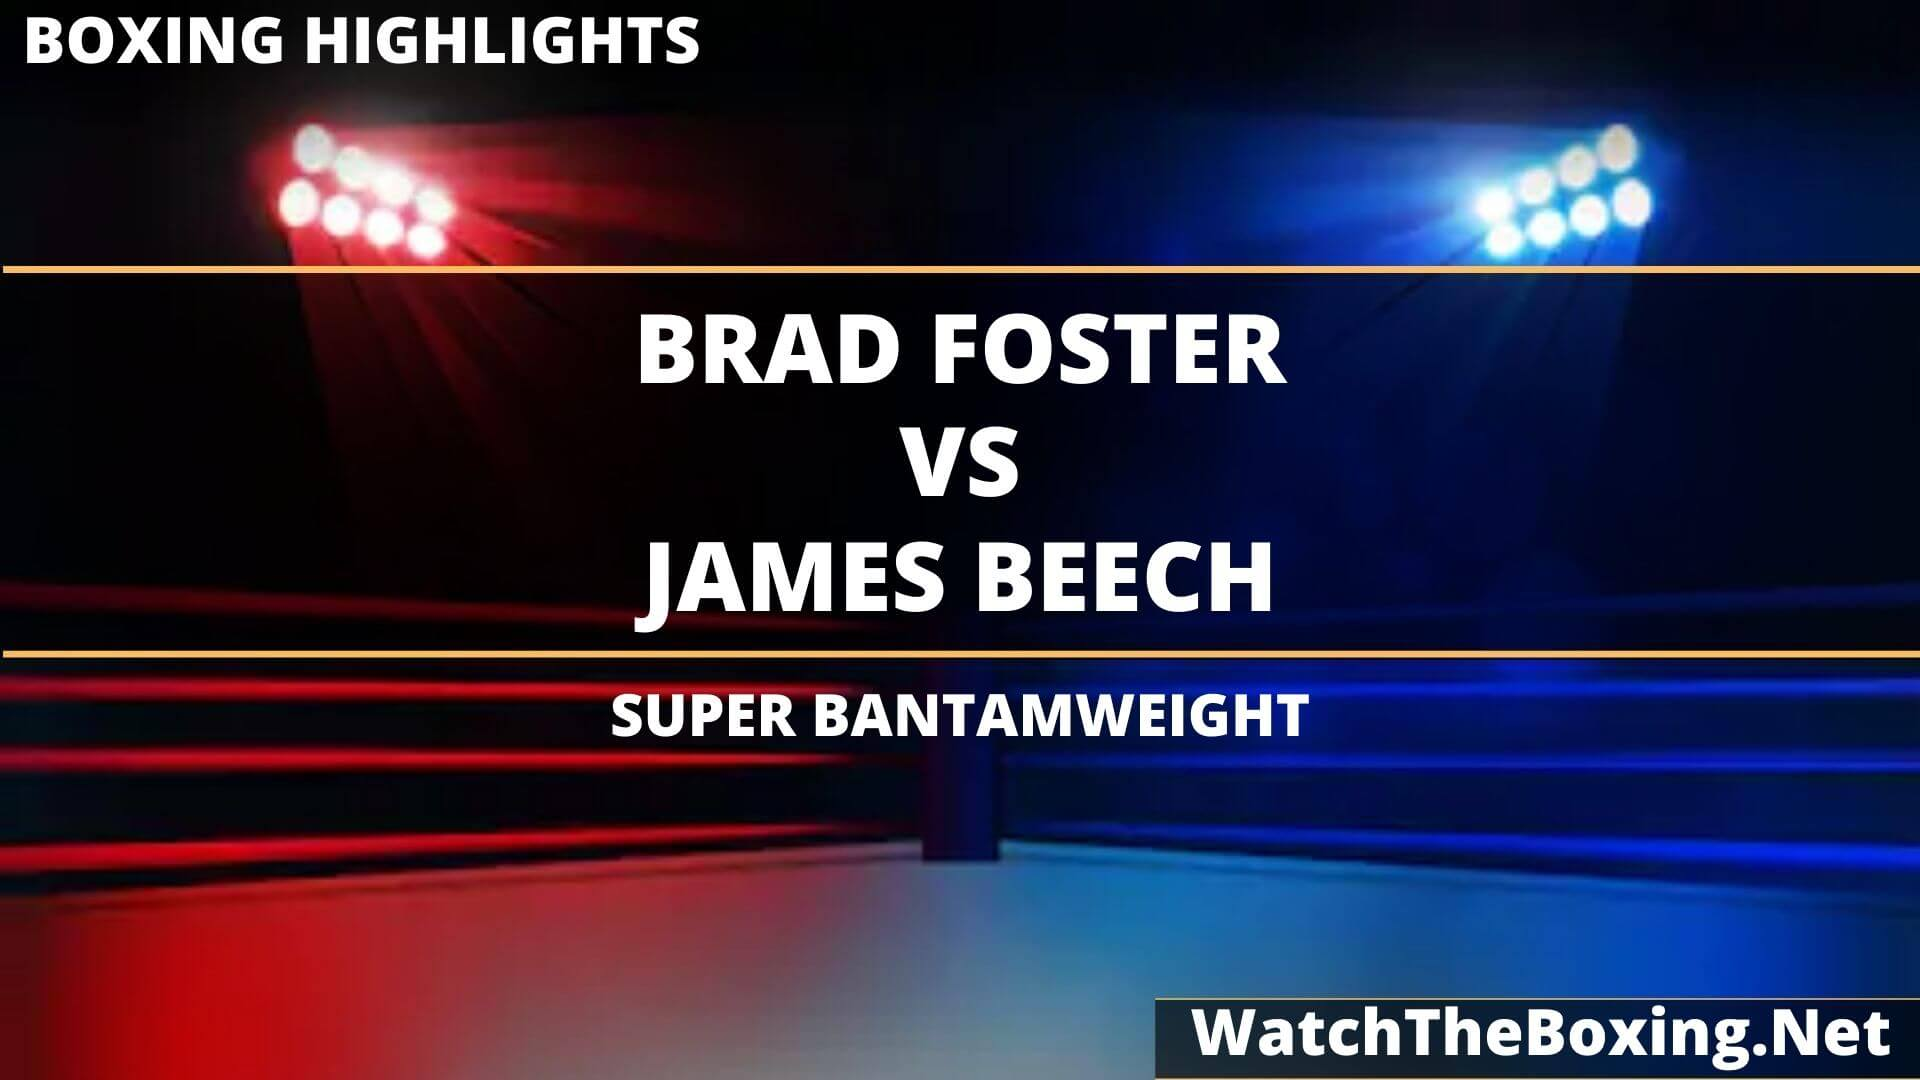 Brad Foster Vs James Beech Highlights 2020 Super Bantamweight